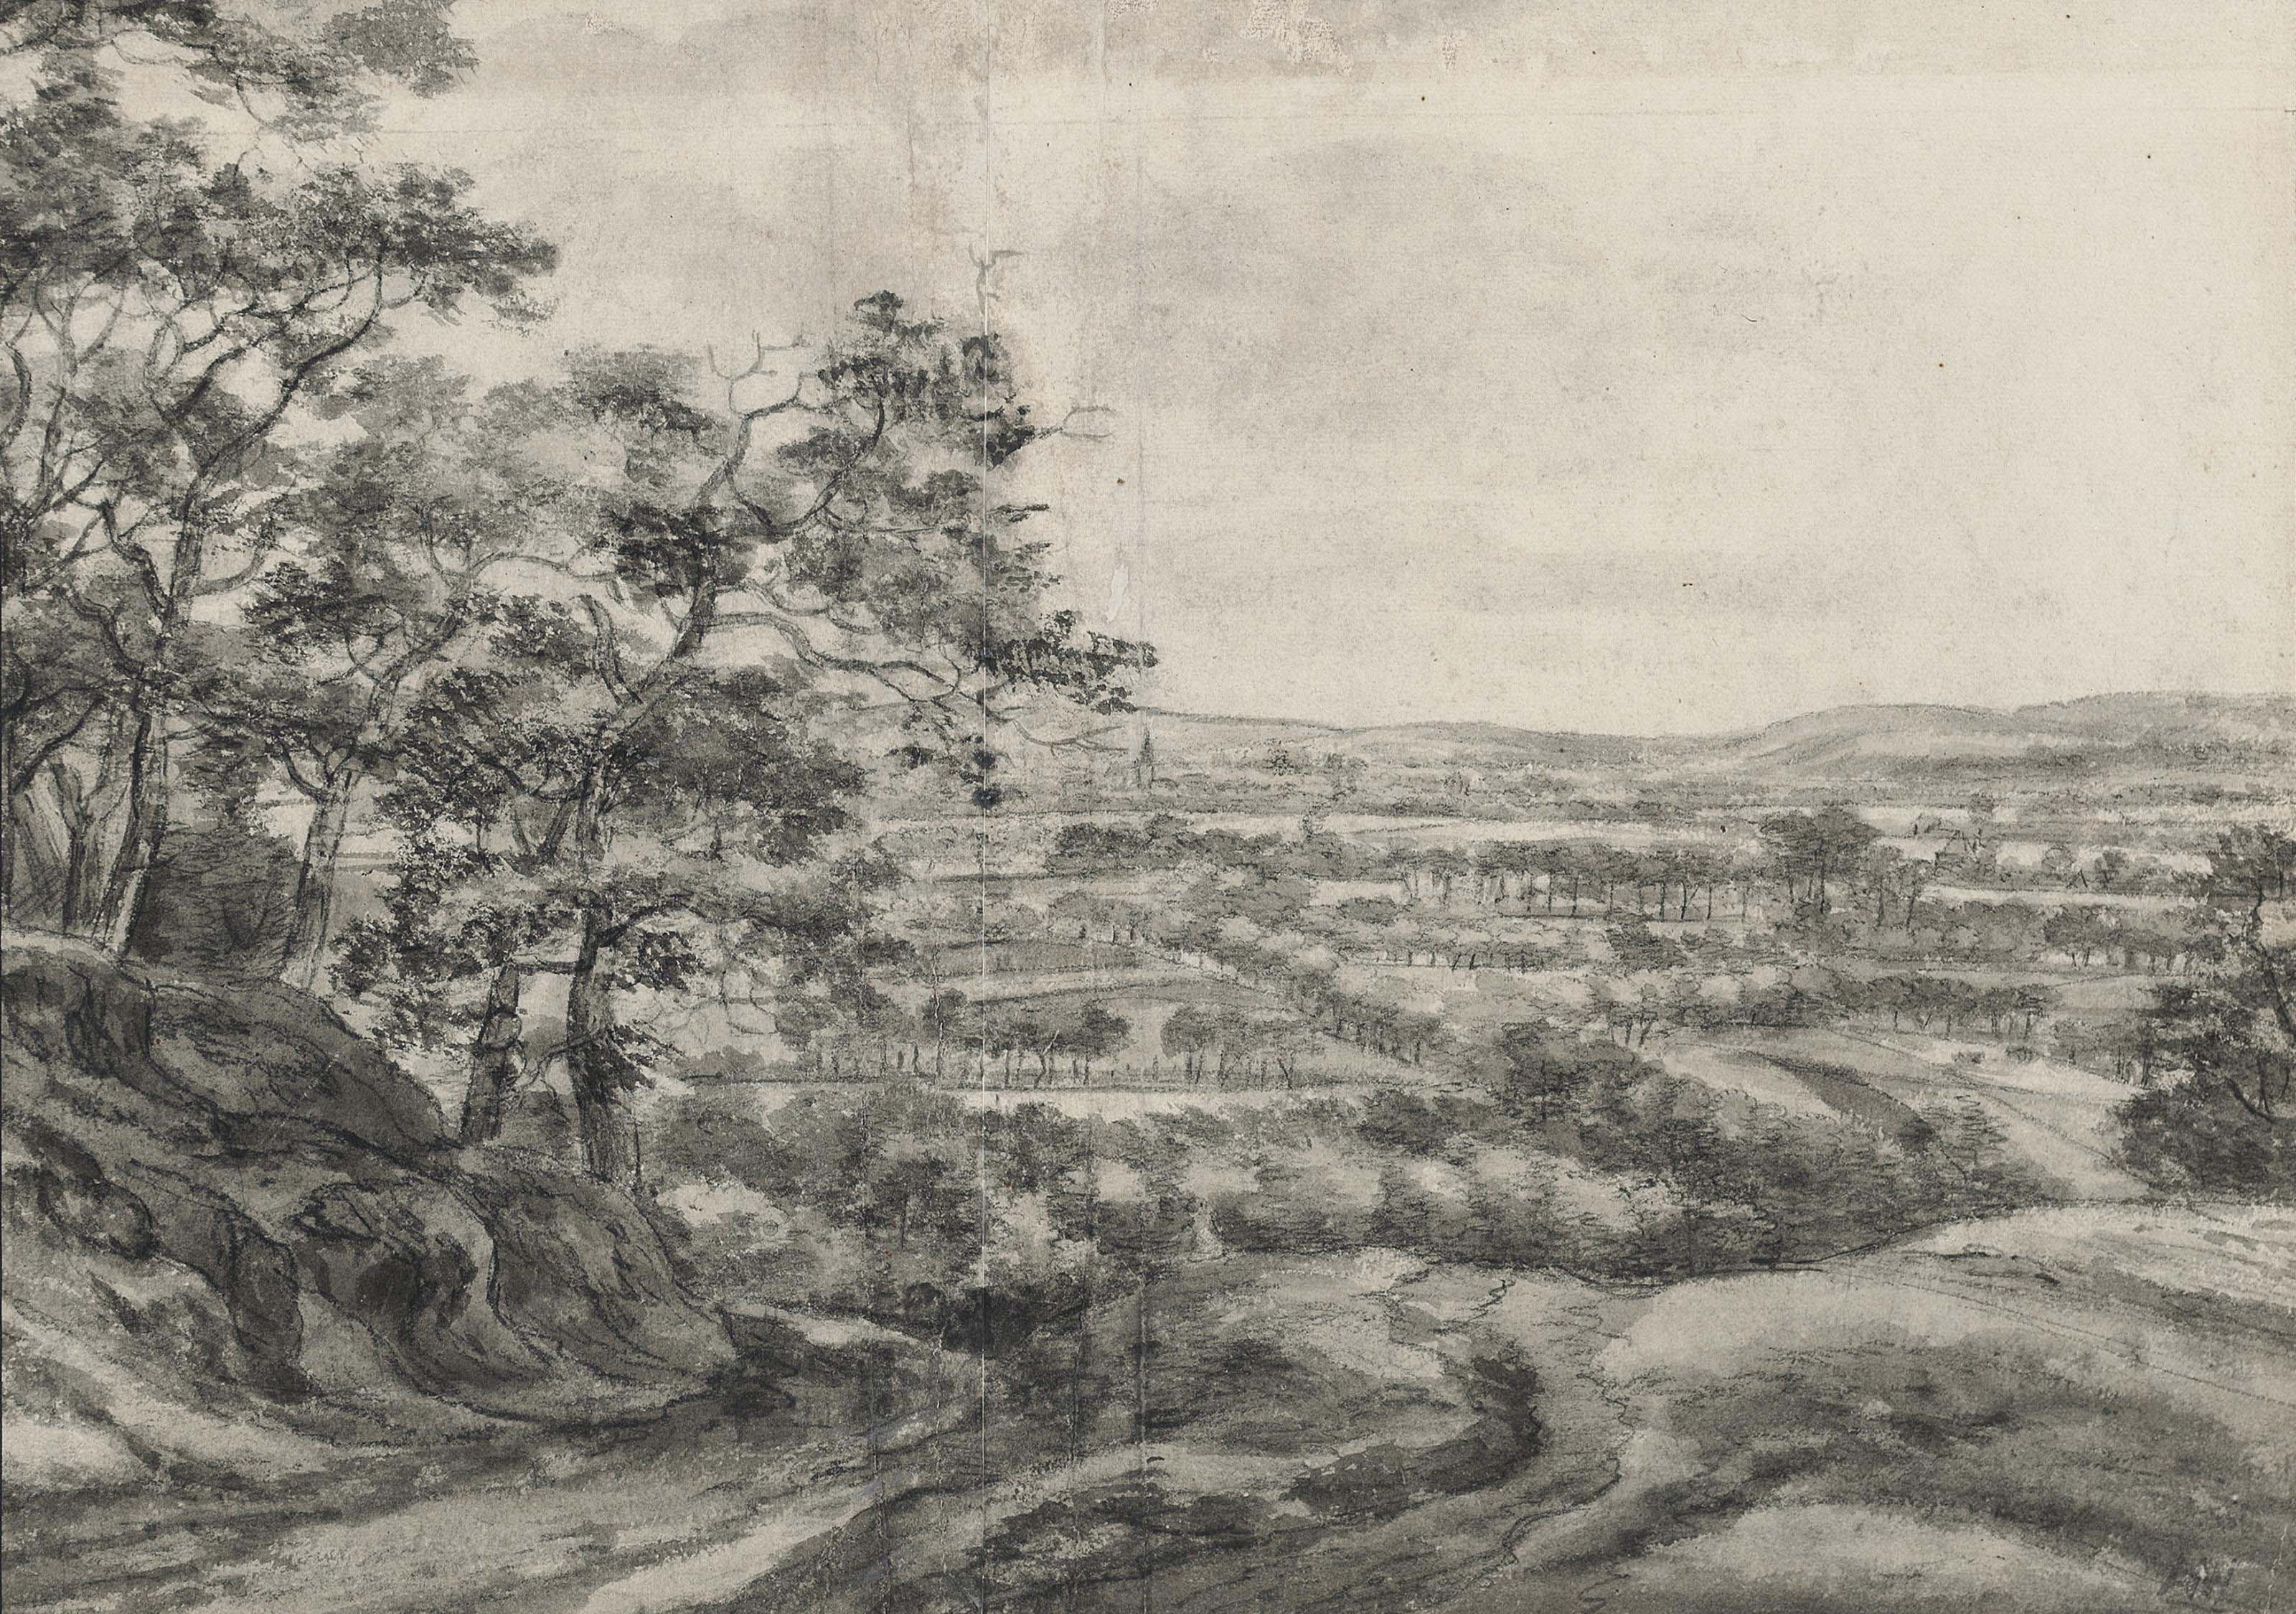 View of an extensive plain with a village in the distance